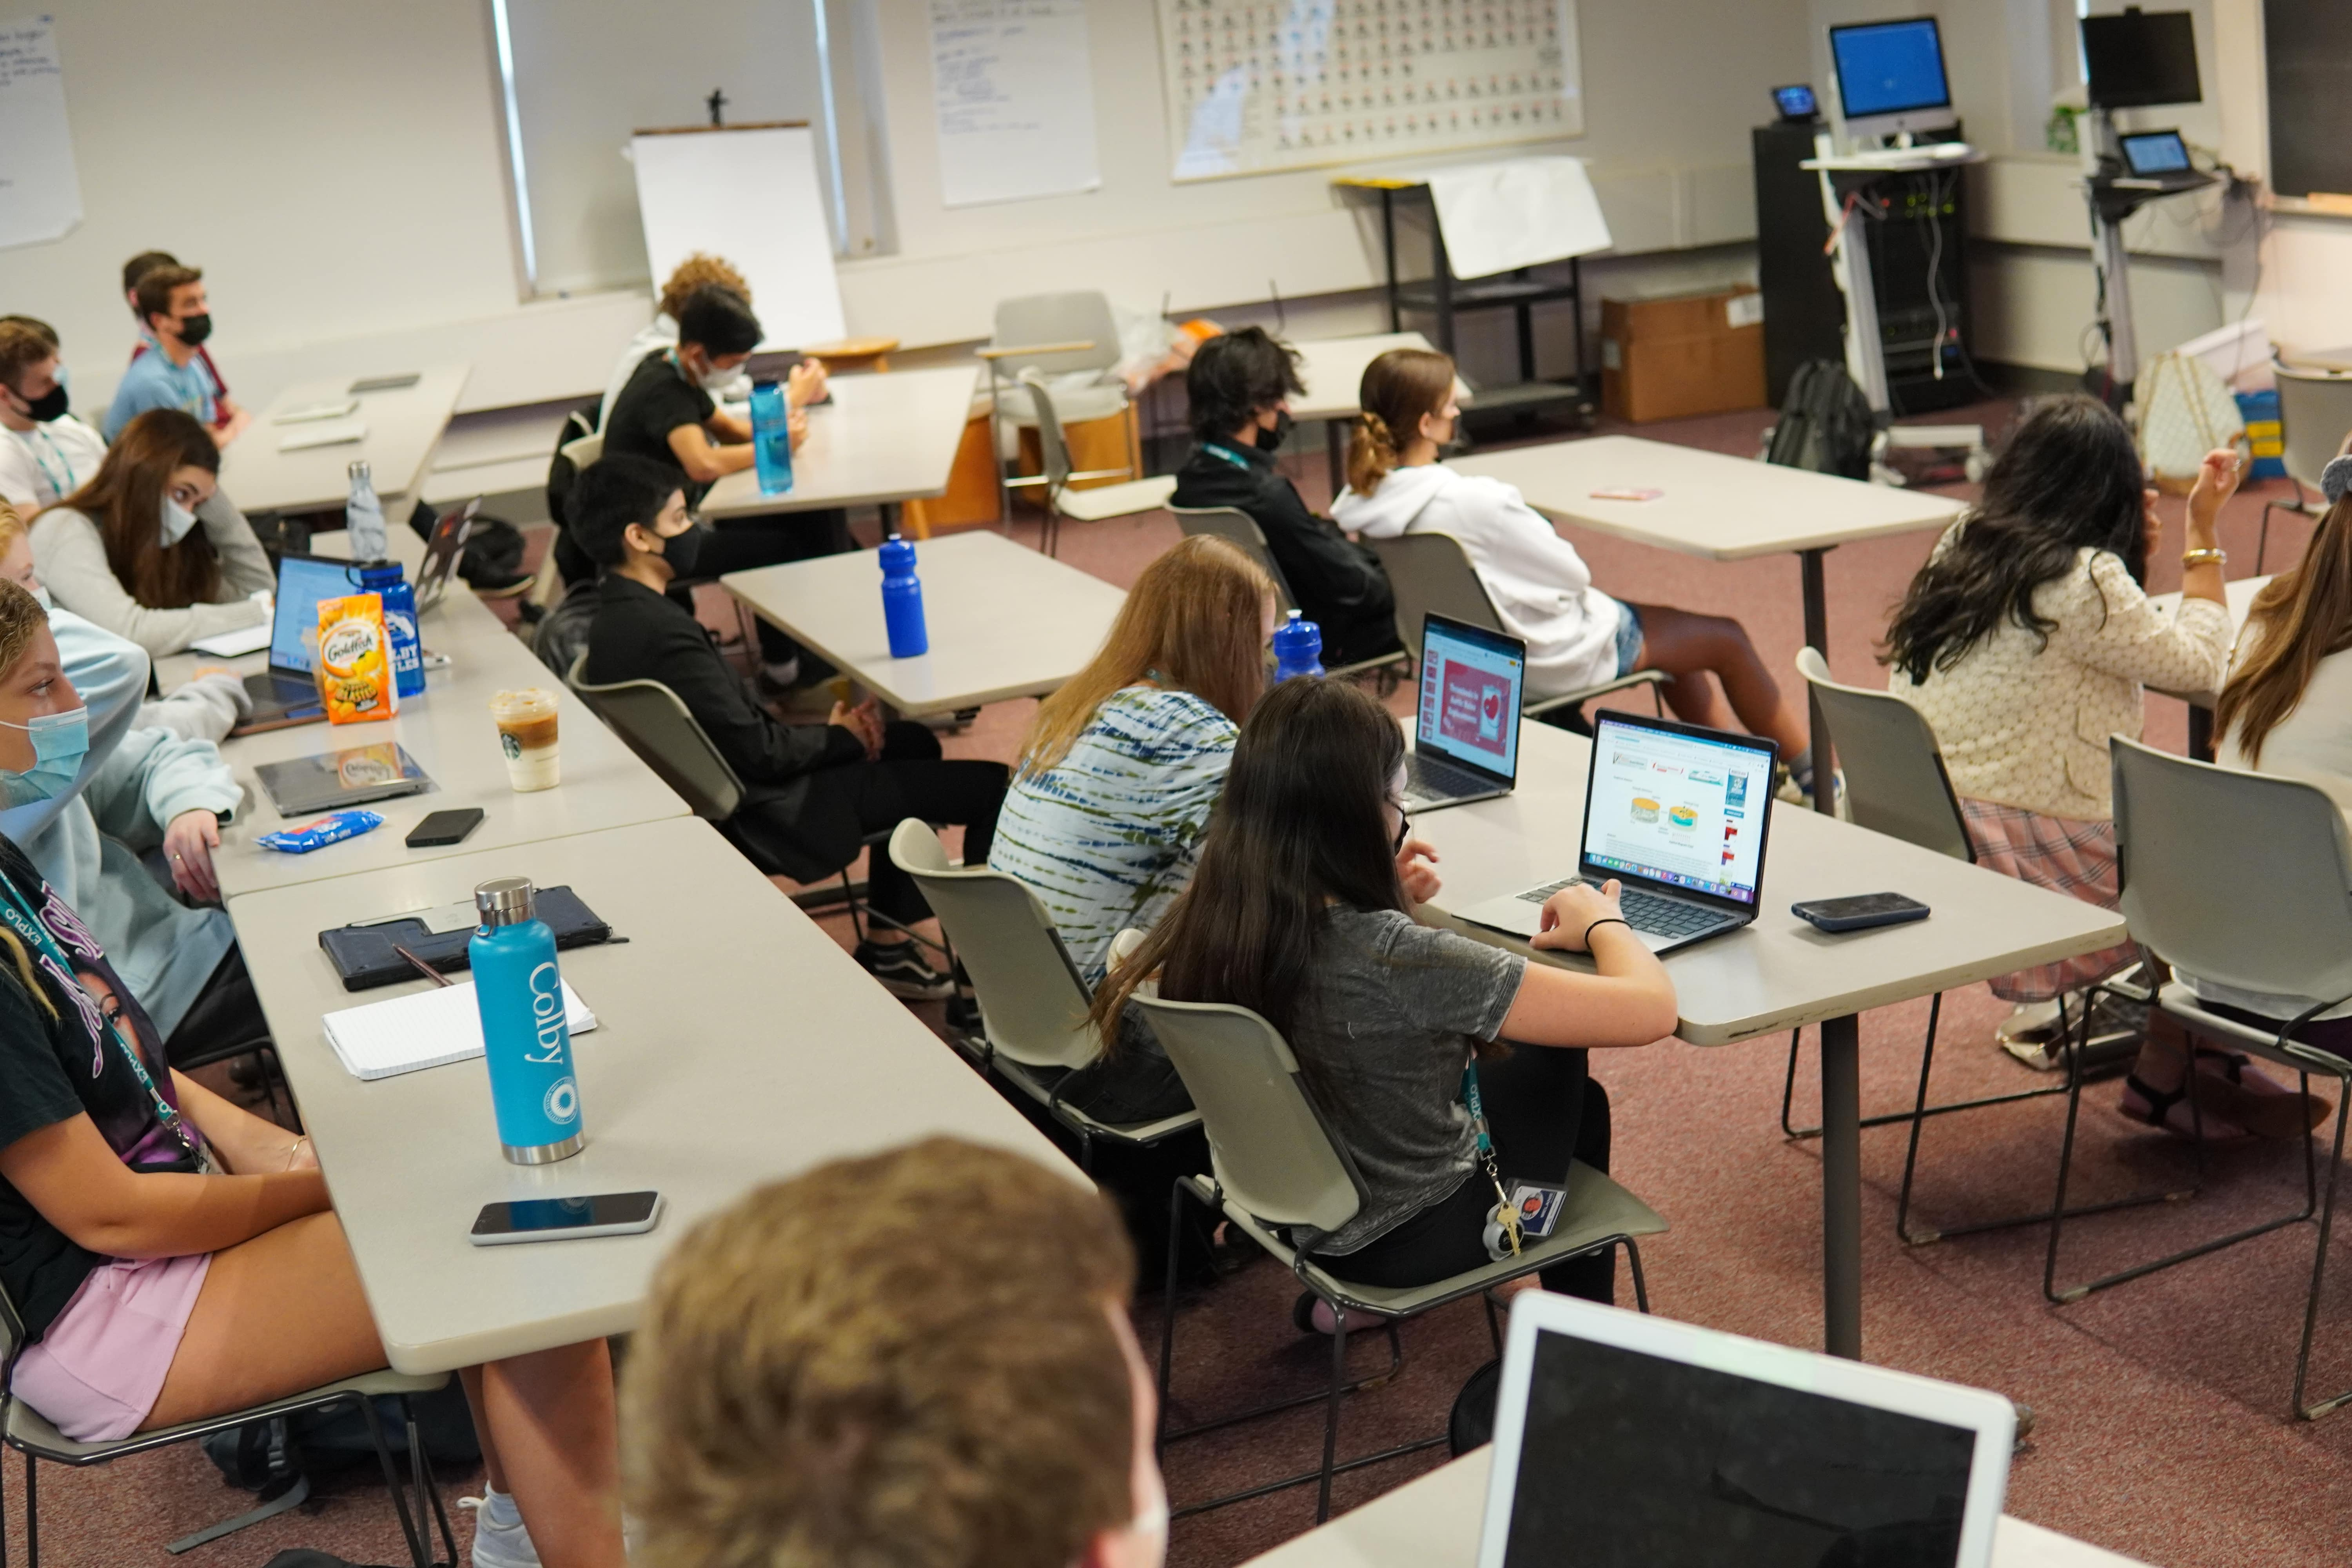 Students sit with their laptops and notebooks in front of them as they attend a morning discussion on medical ethics.